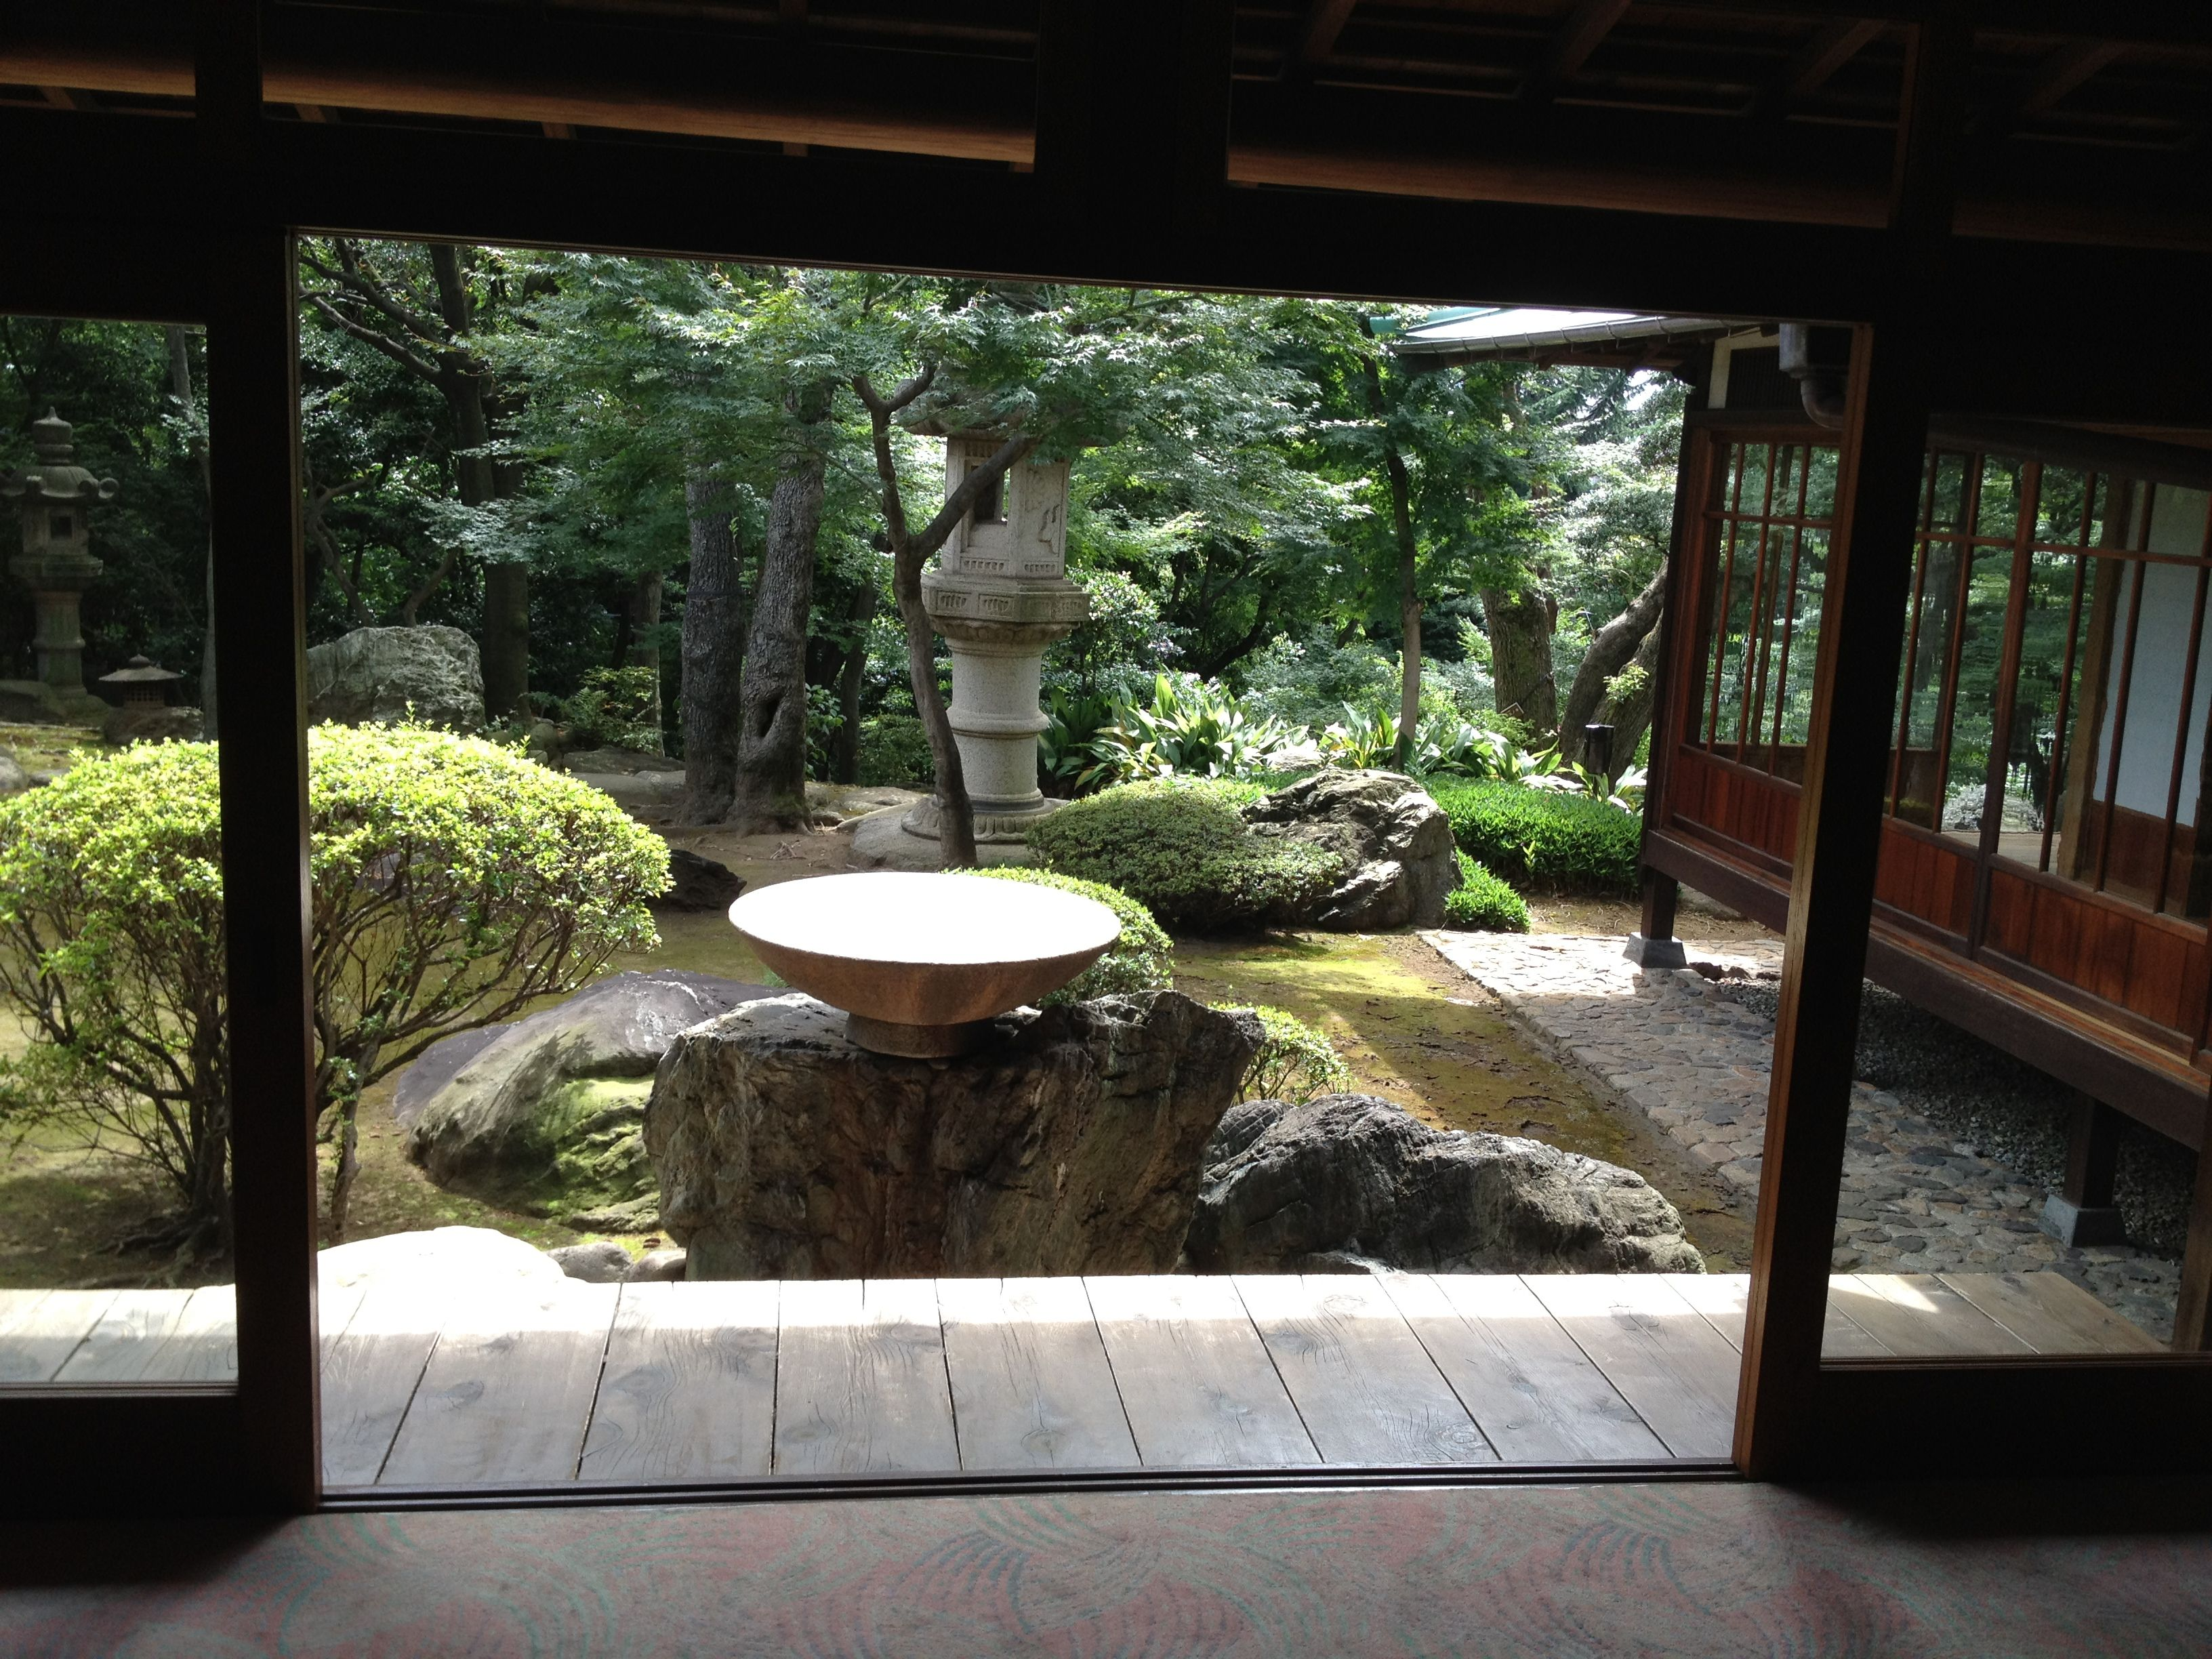 Asien Garten Shop Traditional Japanese Home Images Stunning View Of The